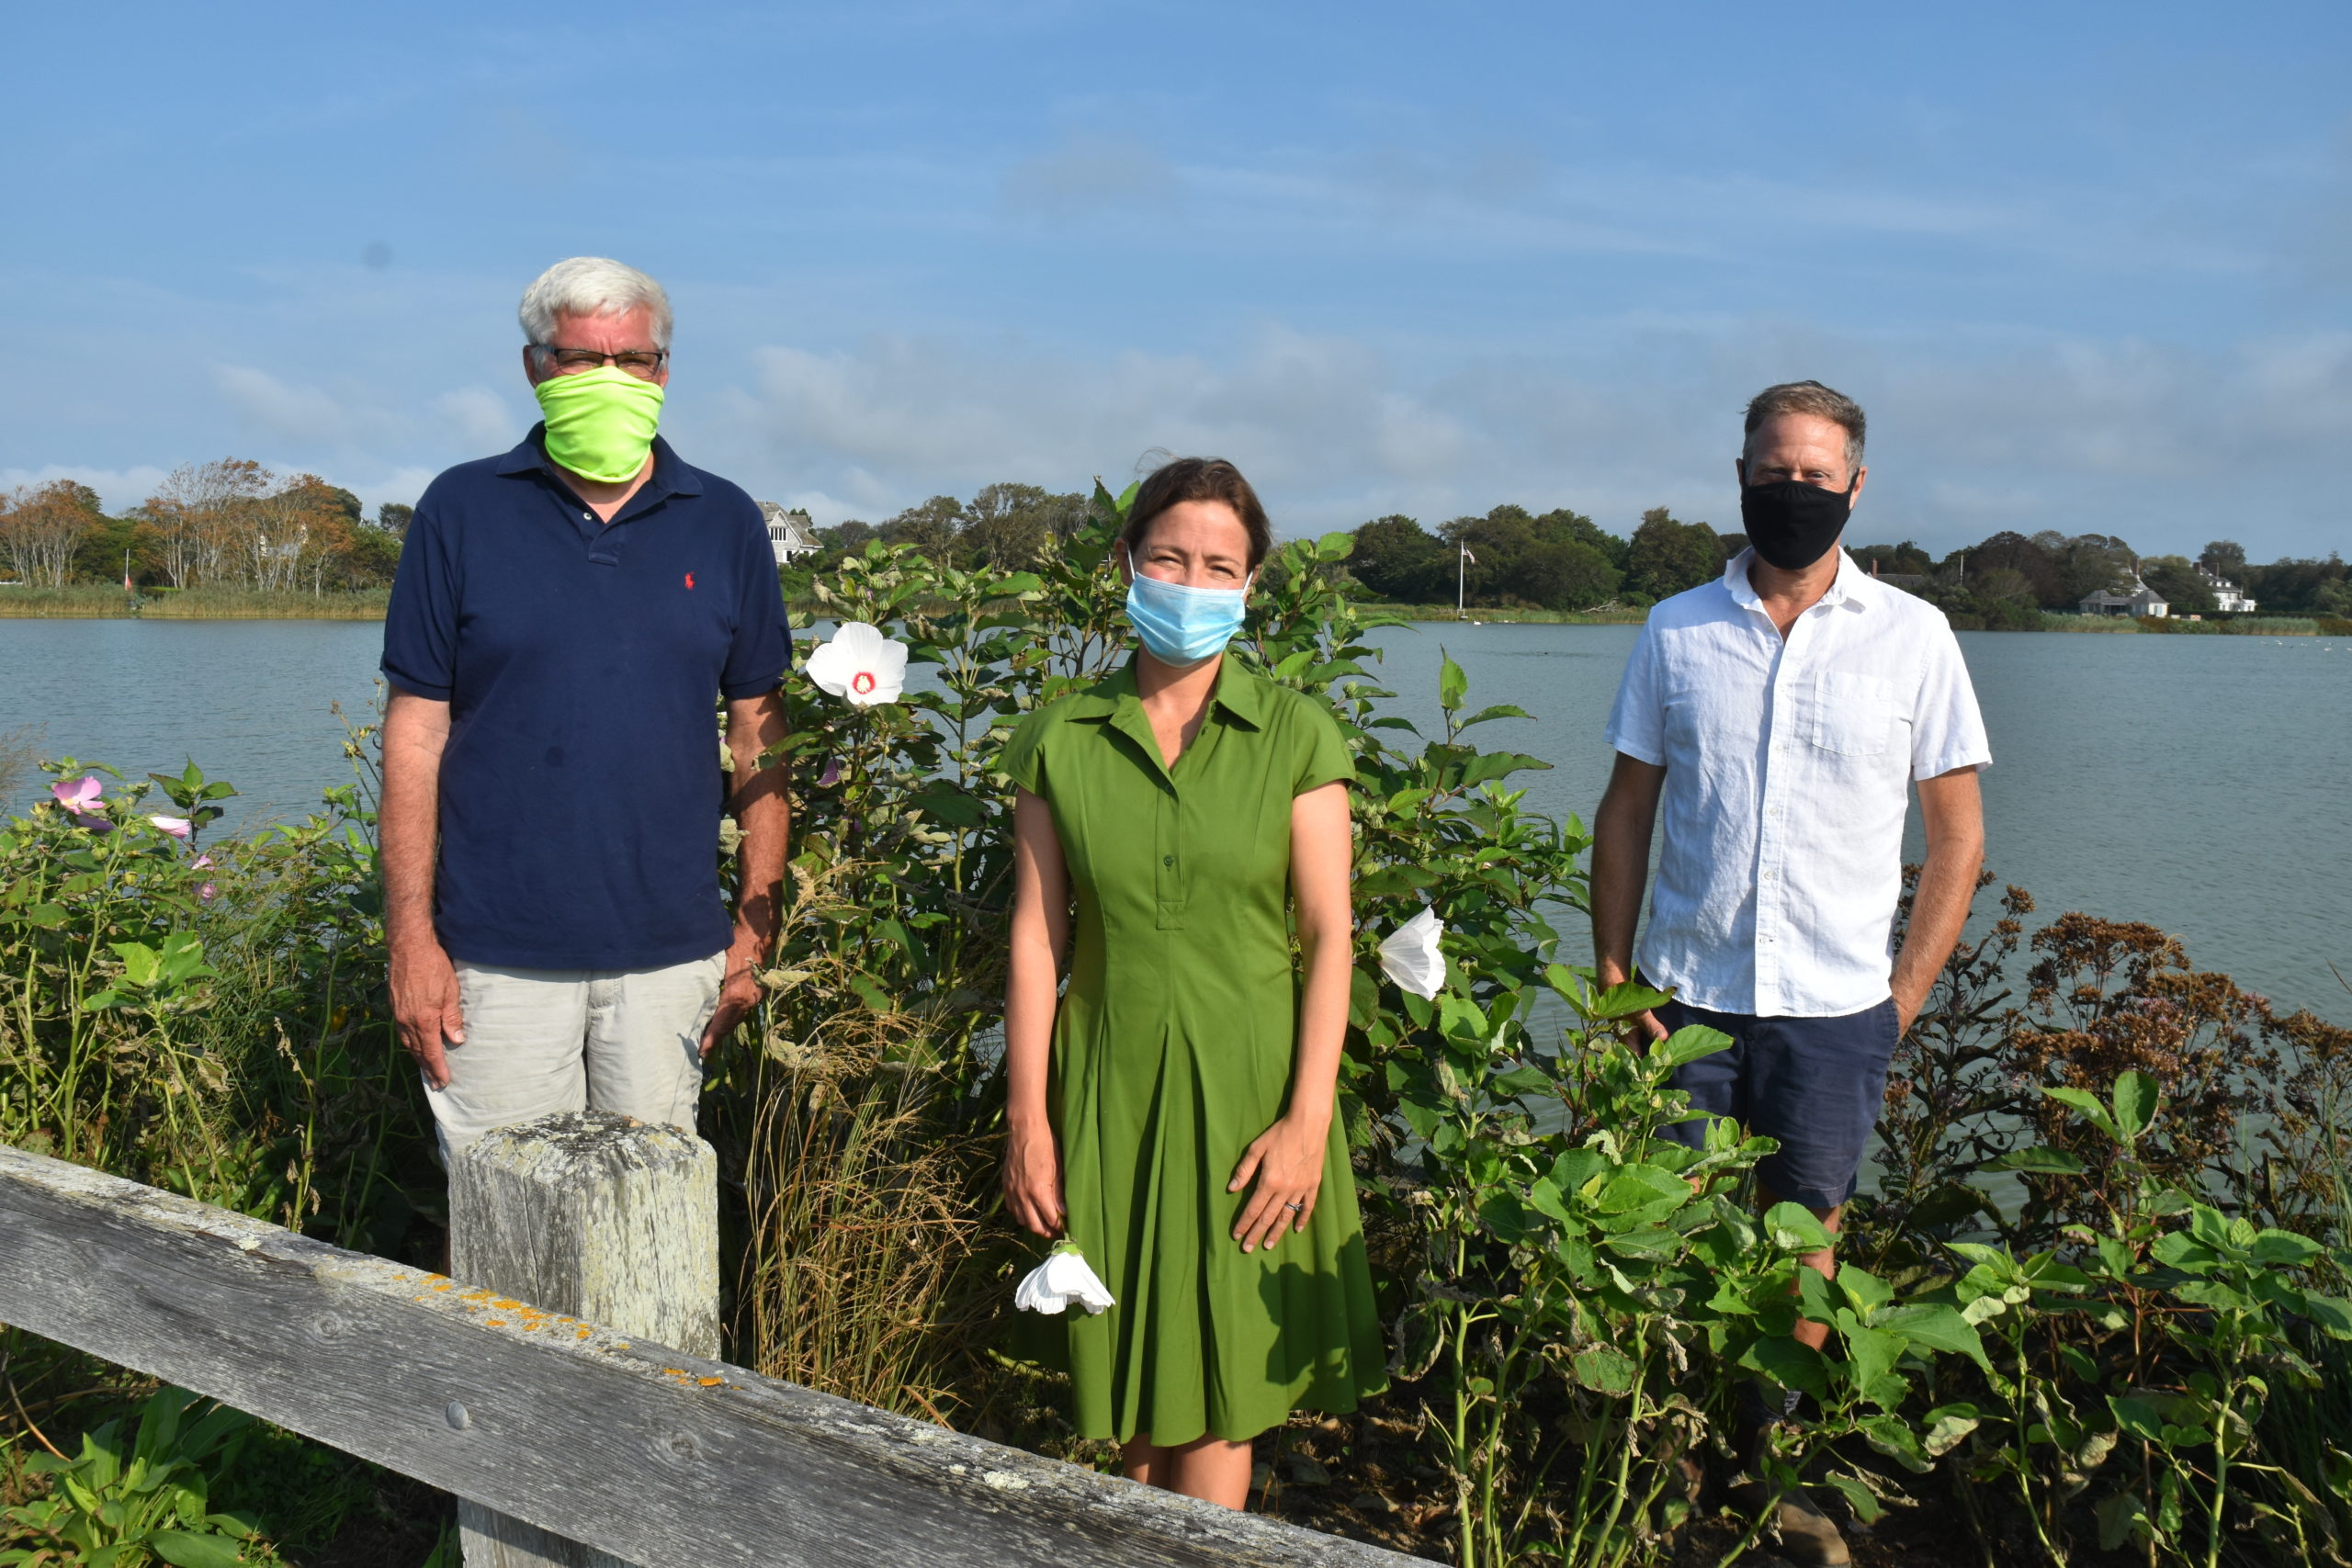 Southampton Town Trustee Bill Pell, Meghan Magyar, a member of the board of the Lake Agawam Conservancy, and horticulturalist Tony Piazza at a bioswale that was planted this year to help filter pollutants from entering Lake Agawam. STEPHEN J, KOTZ